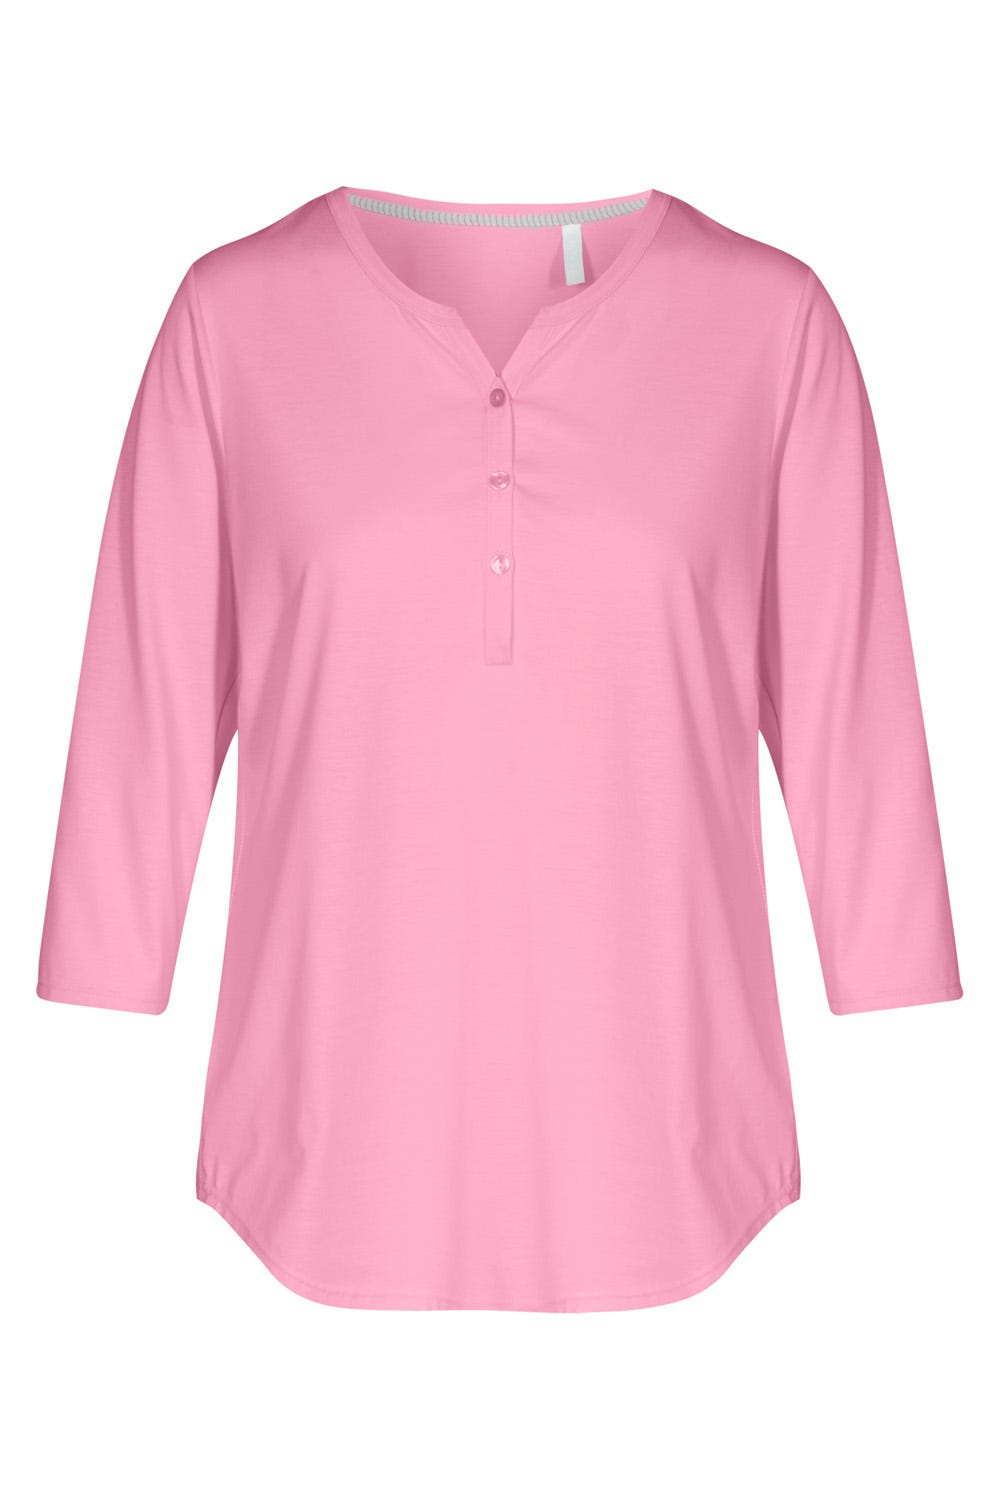 Smart Casual Basic Shirt mit 3/4-Ärmelnc1652250